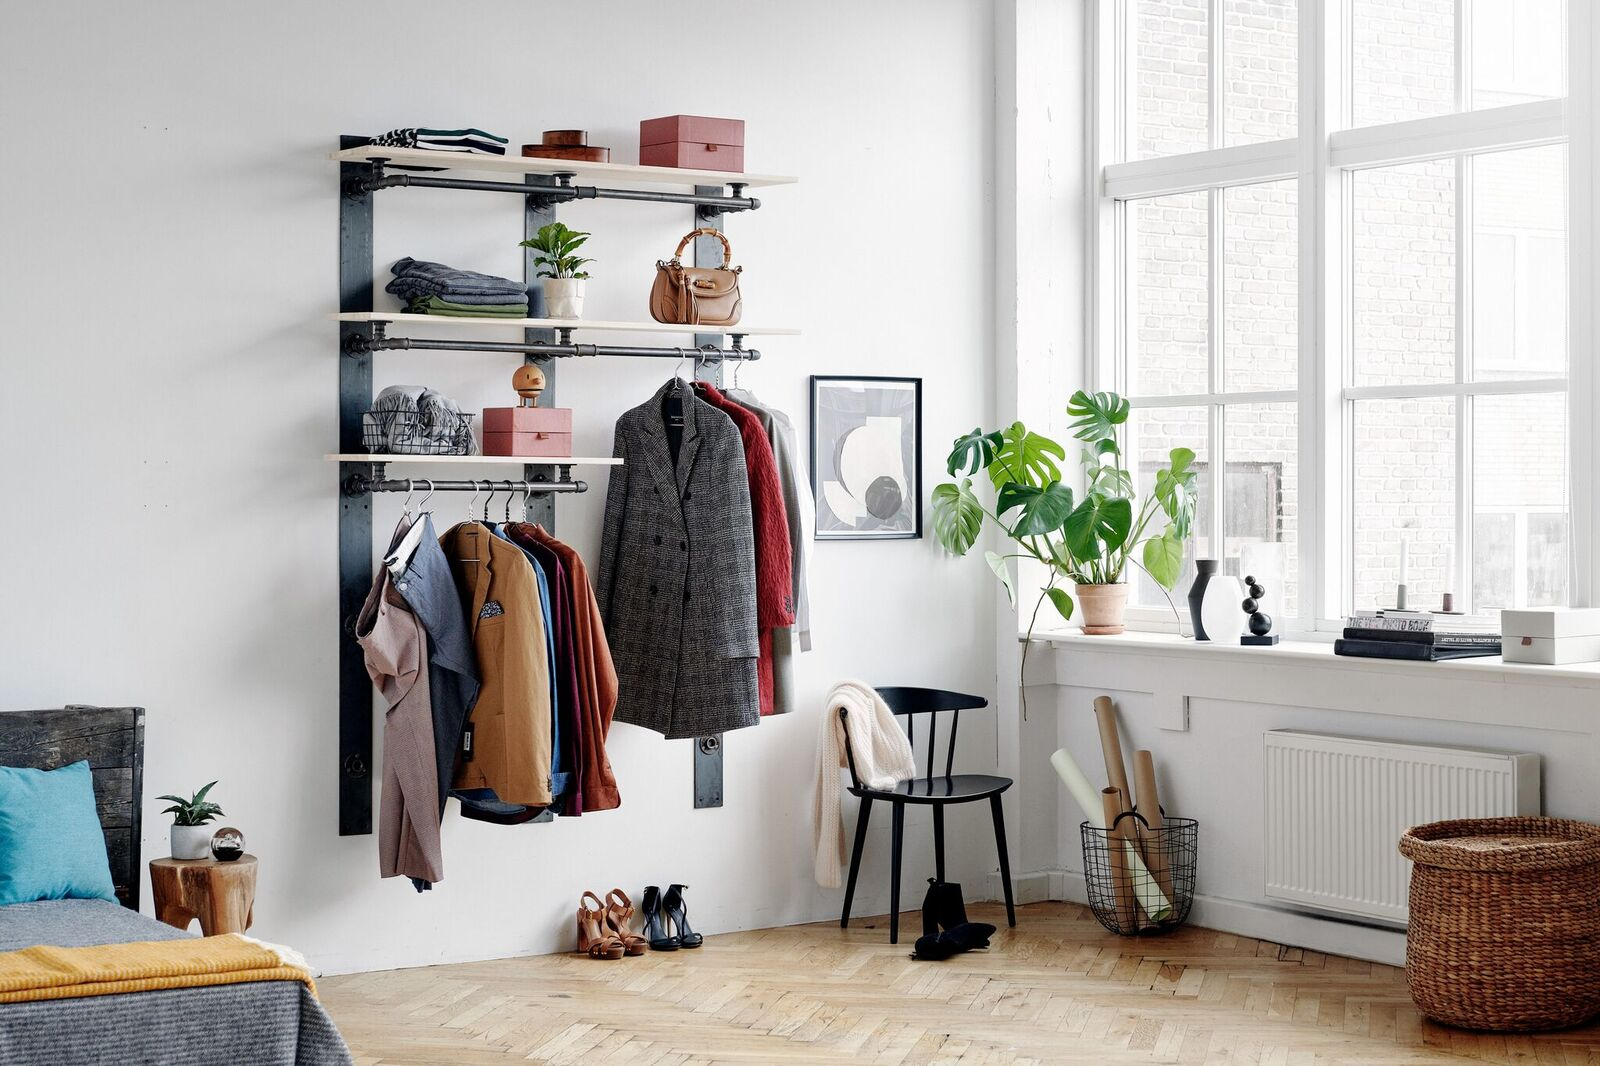 RackBuddy Elements collection - flexible wardrobe solution for your home or store